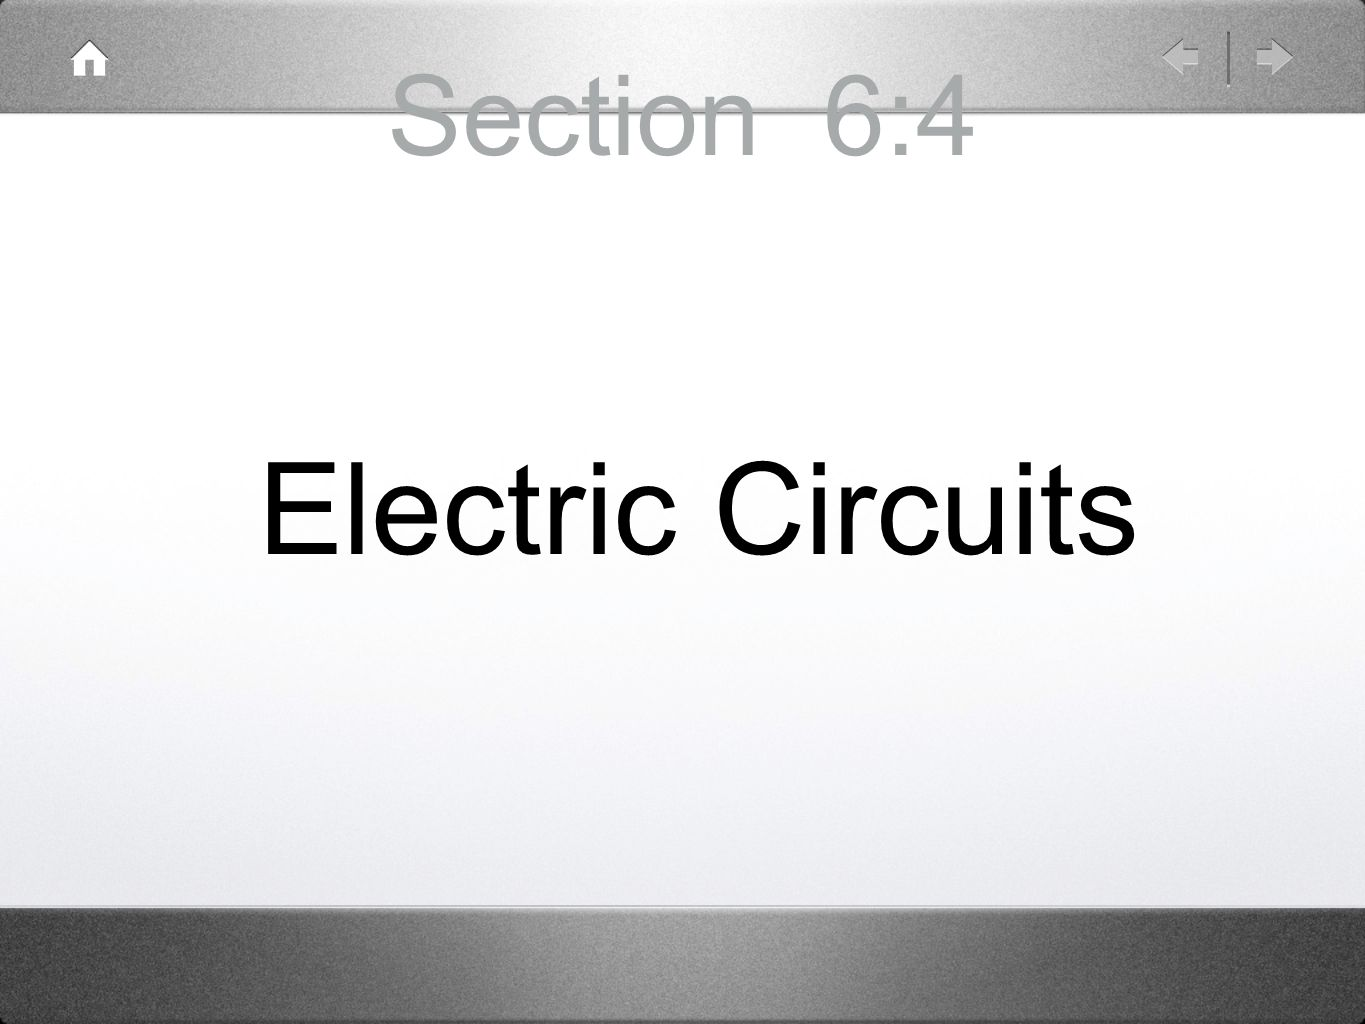 Section 6:4 Electric Circuits